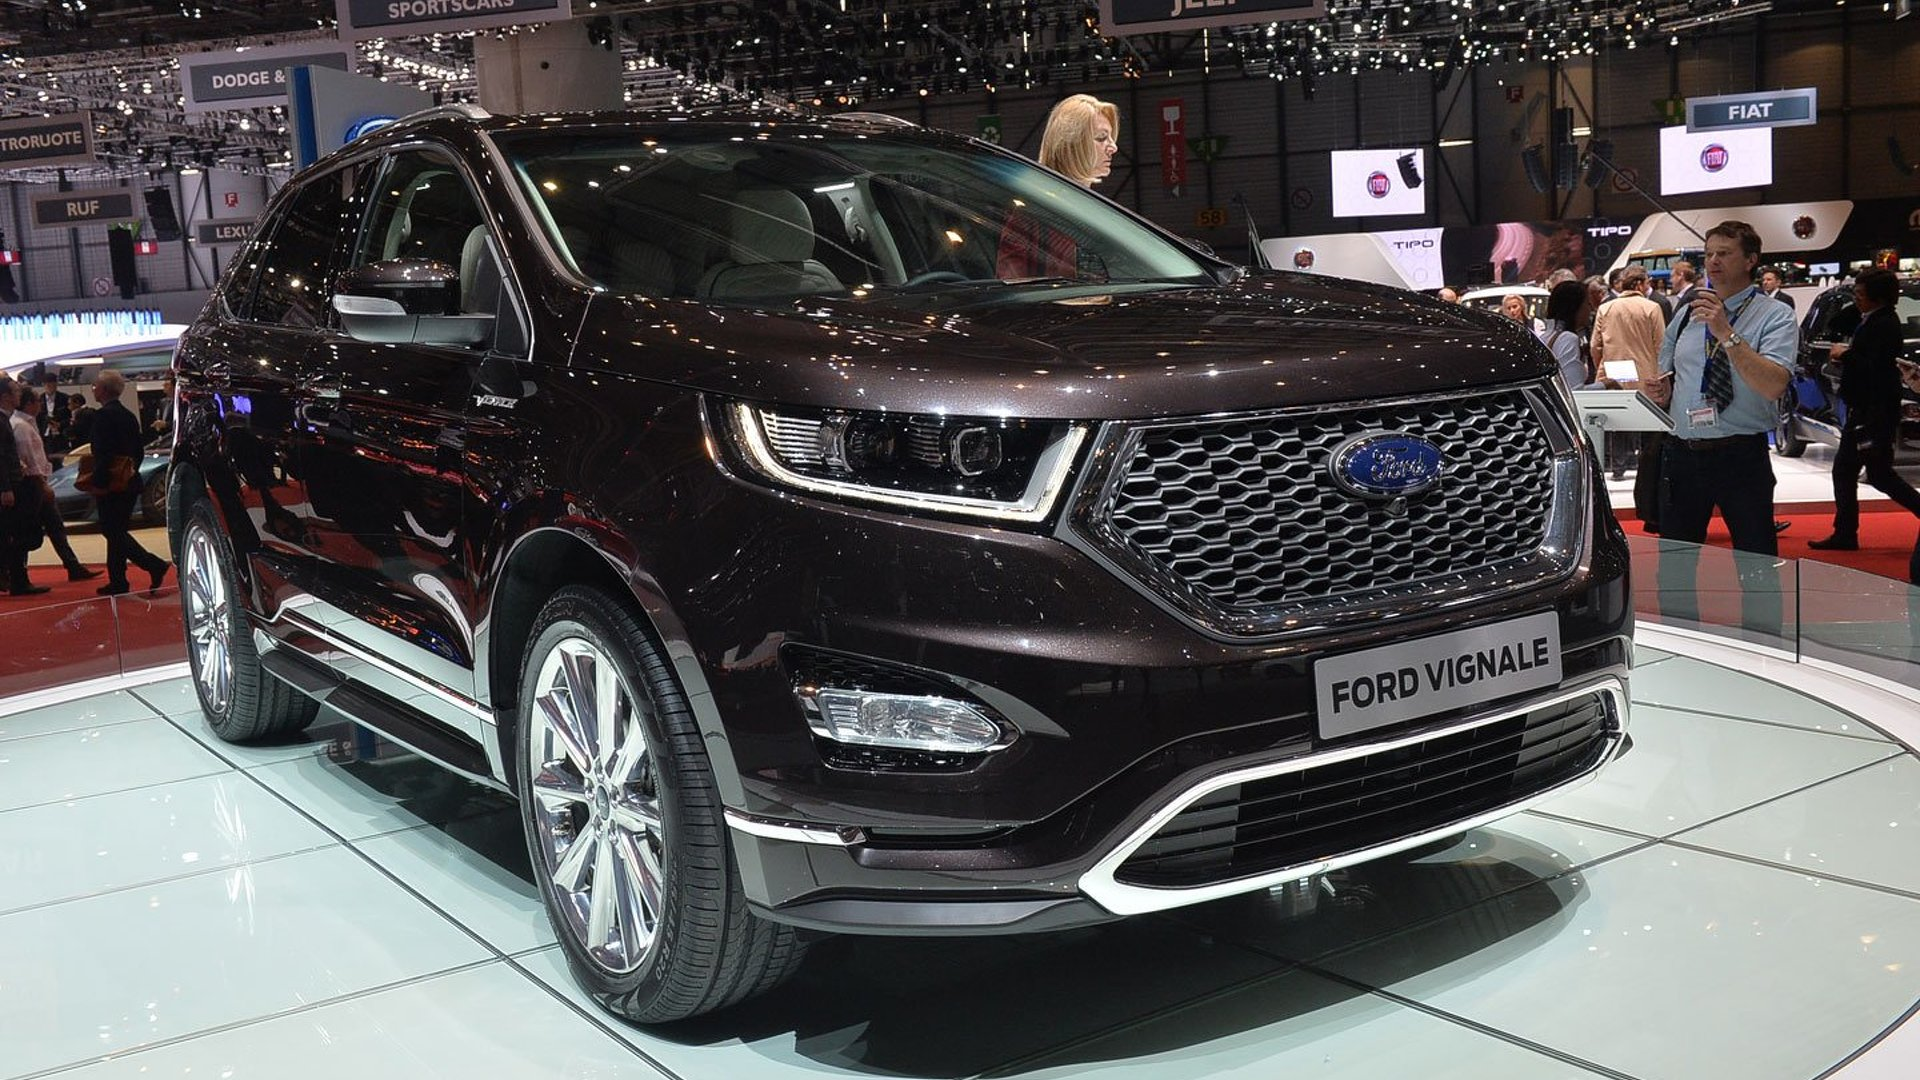 ford vignale family gains four new models in geneva. Black Bedroom Furniture Sets. Home Design Ideas